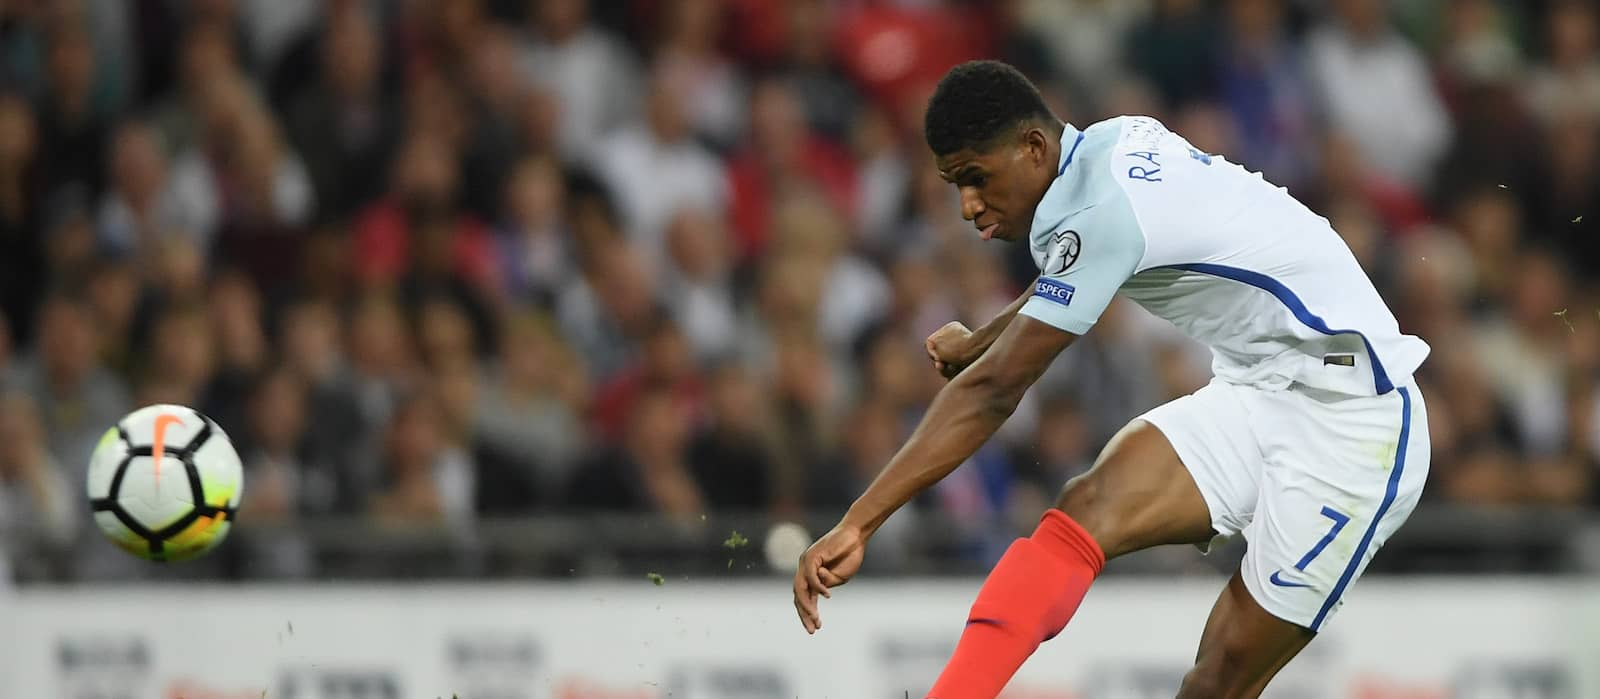 Marcus Rashford's form for England great news for Manchester United